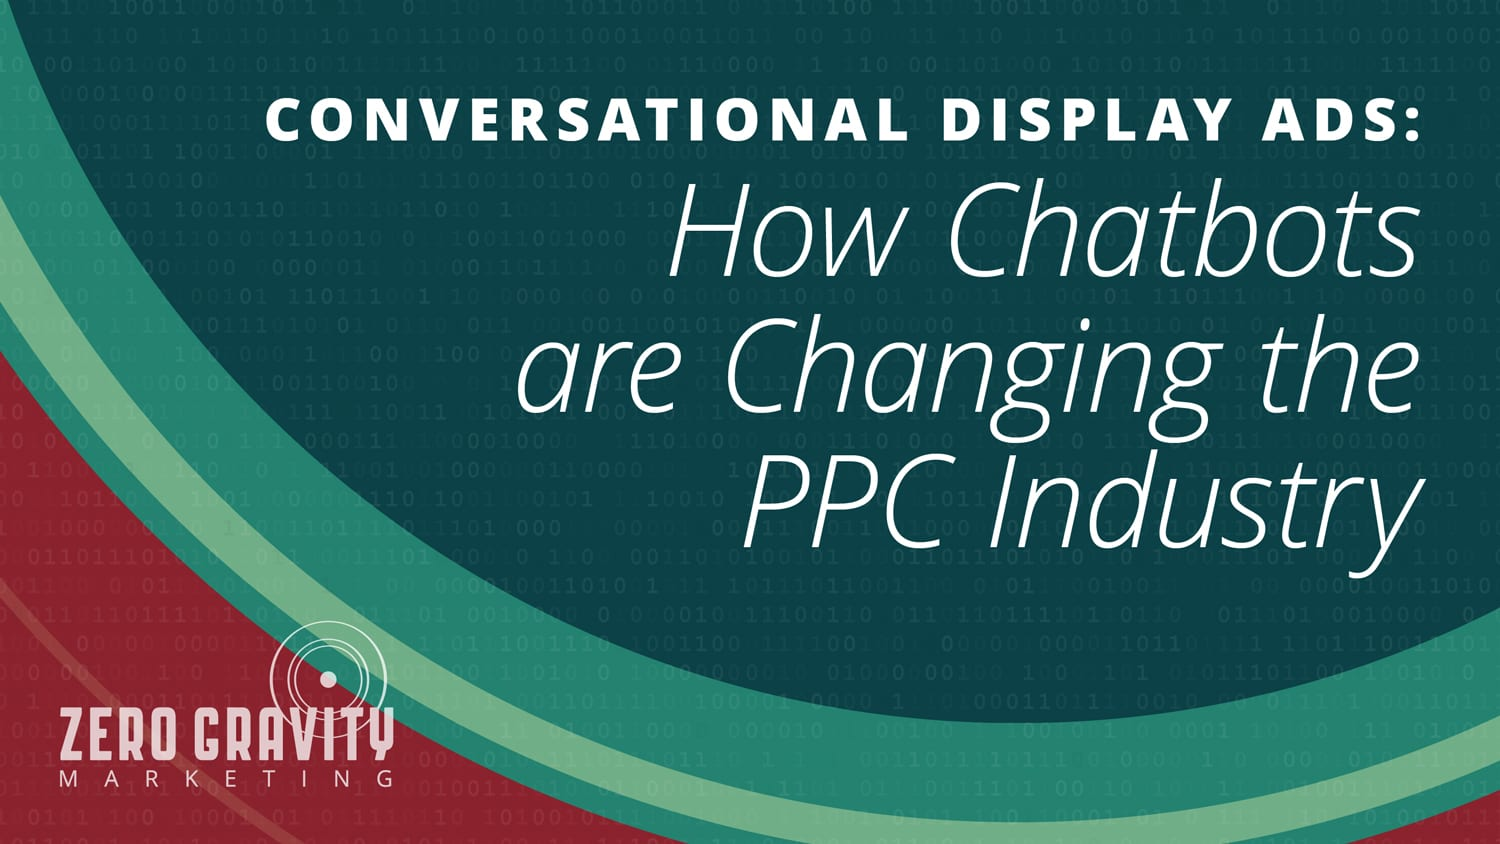 How Chatbots are Changing the PPC Industry